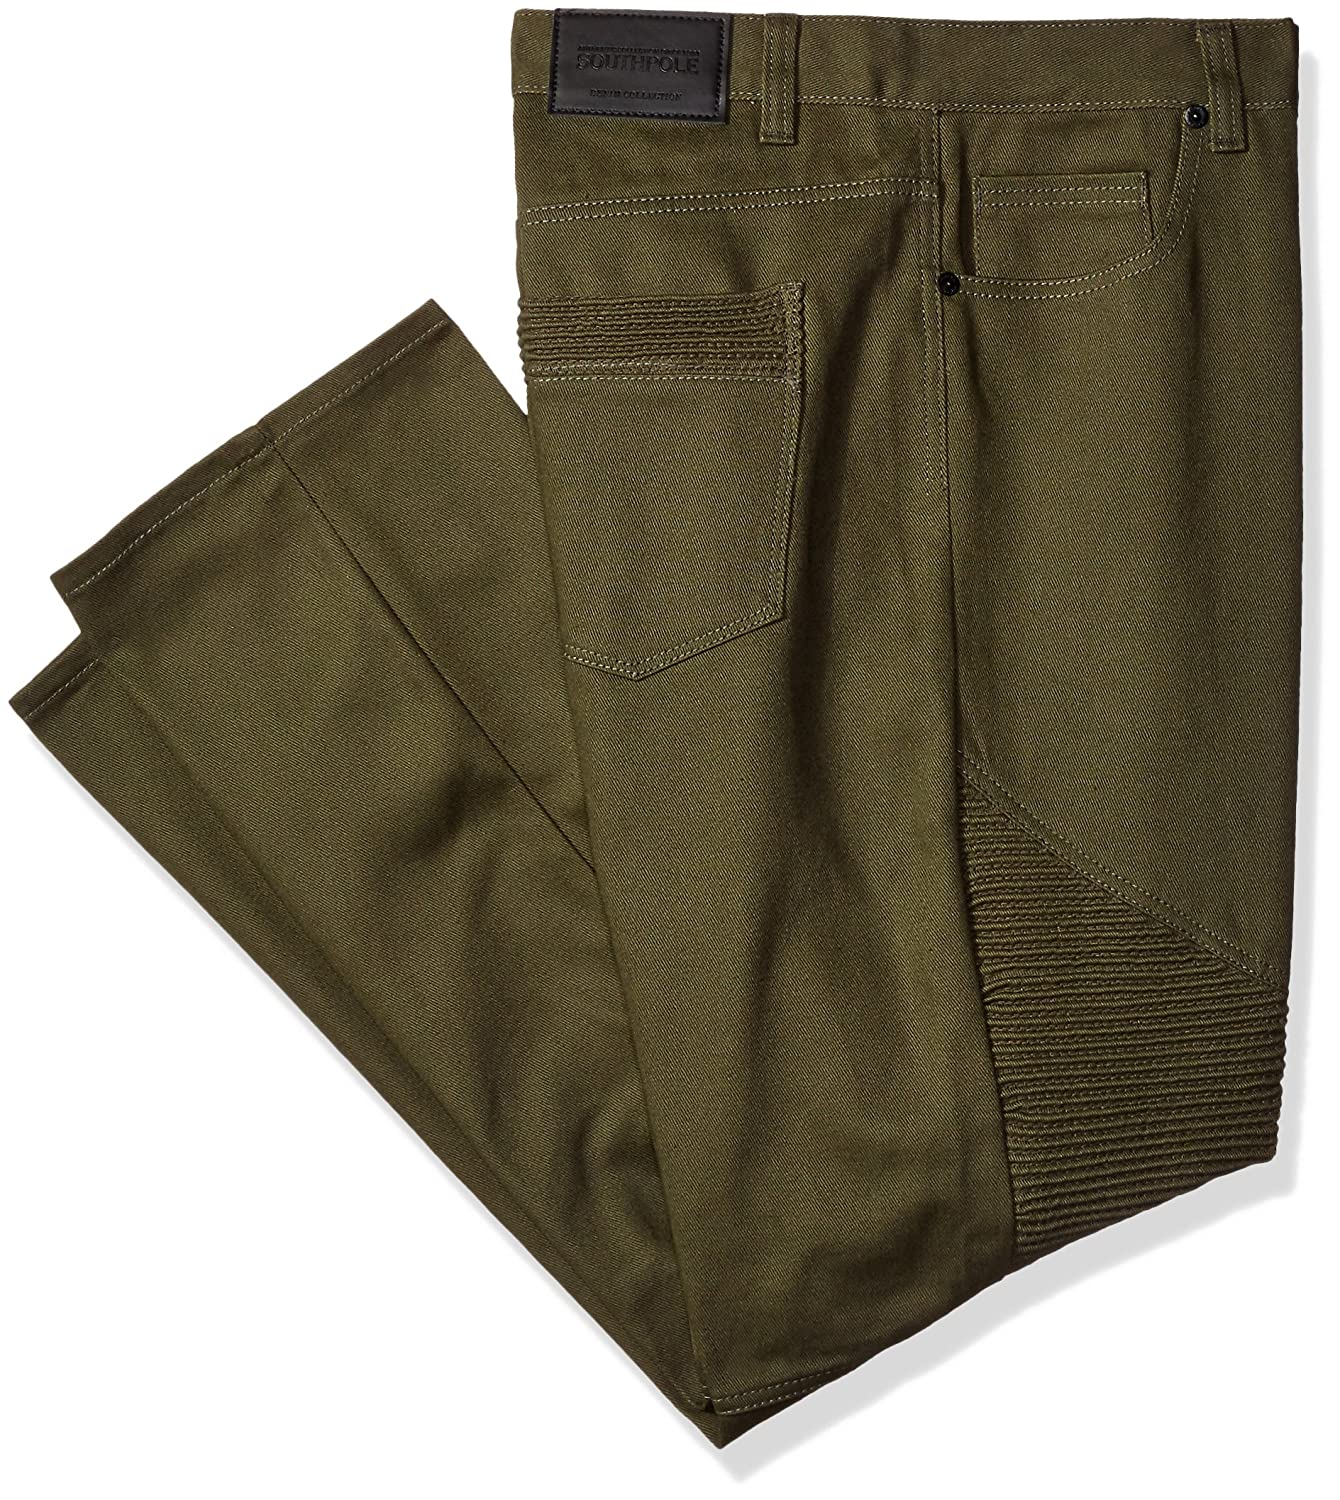 Southpole Men's Big and Tall Twill Pants Long In Thick Bull Twill Fabric and Moto Biker Details On Knees 16327-3306